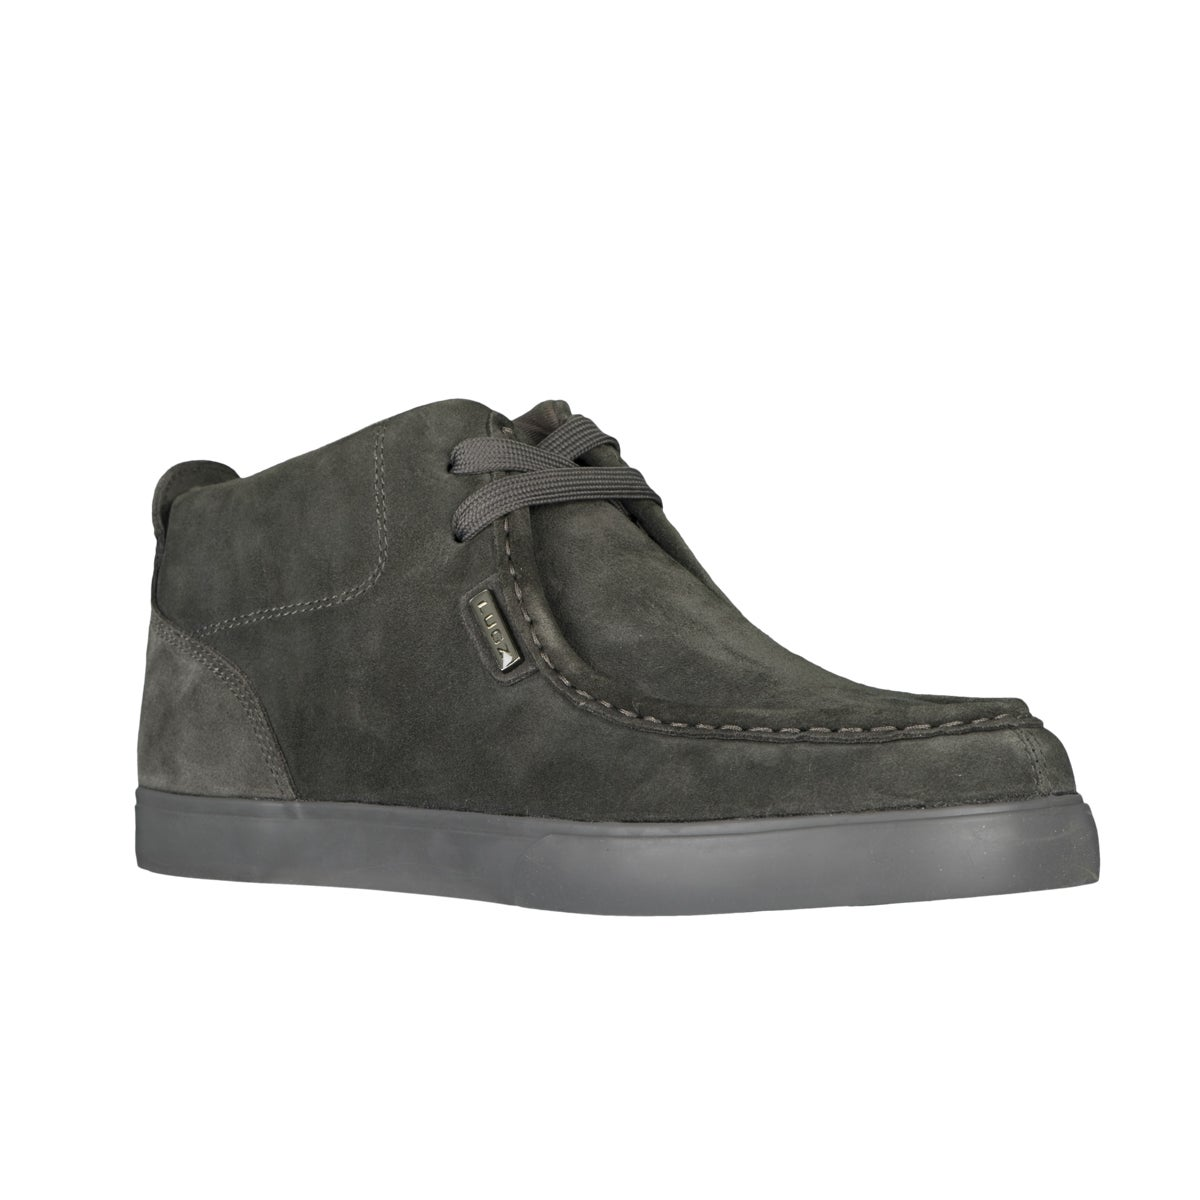 Lugz Men's 'Strider' Suede Charcoal Sneakers